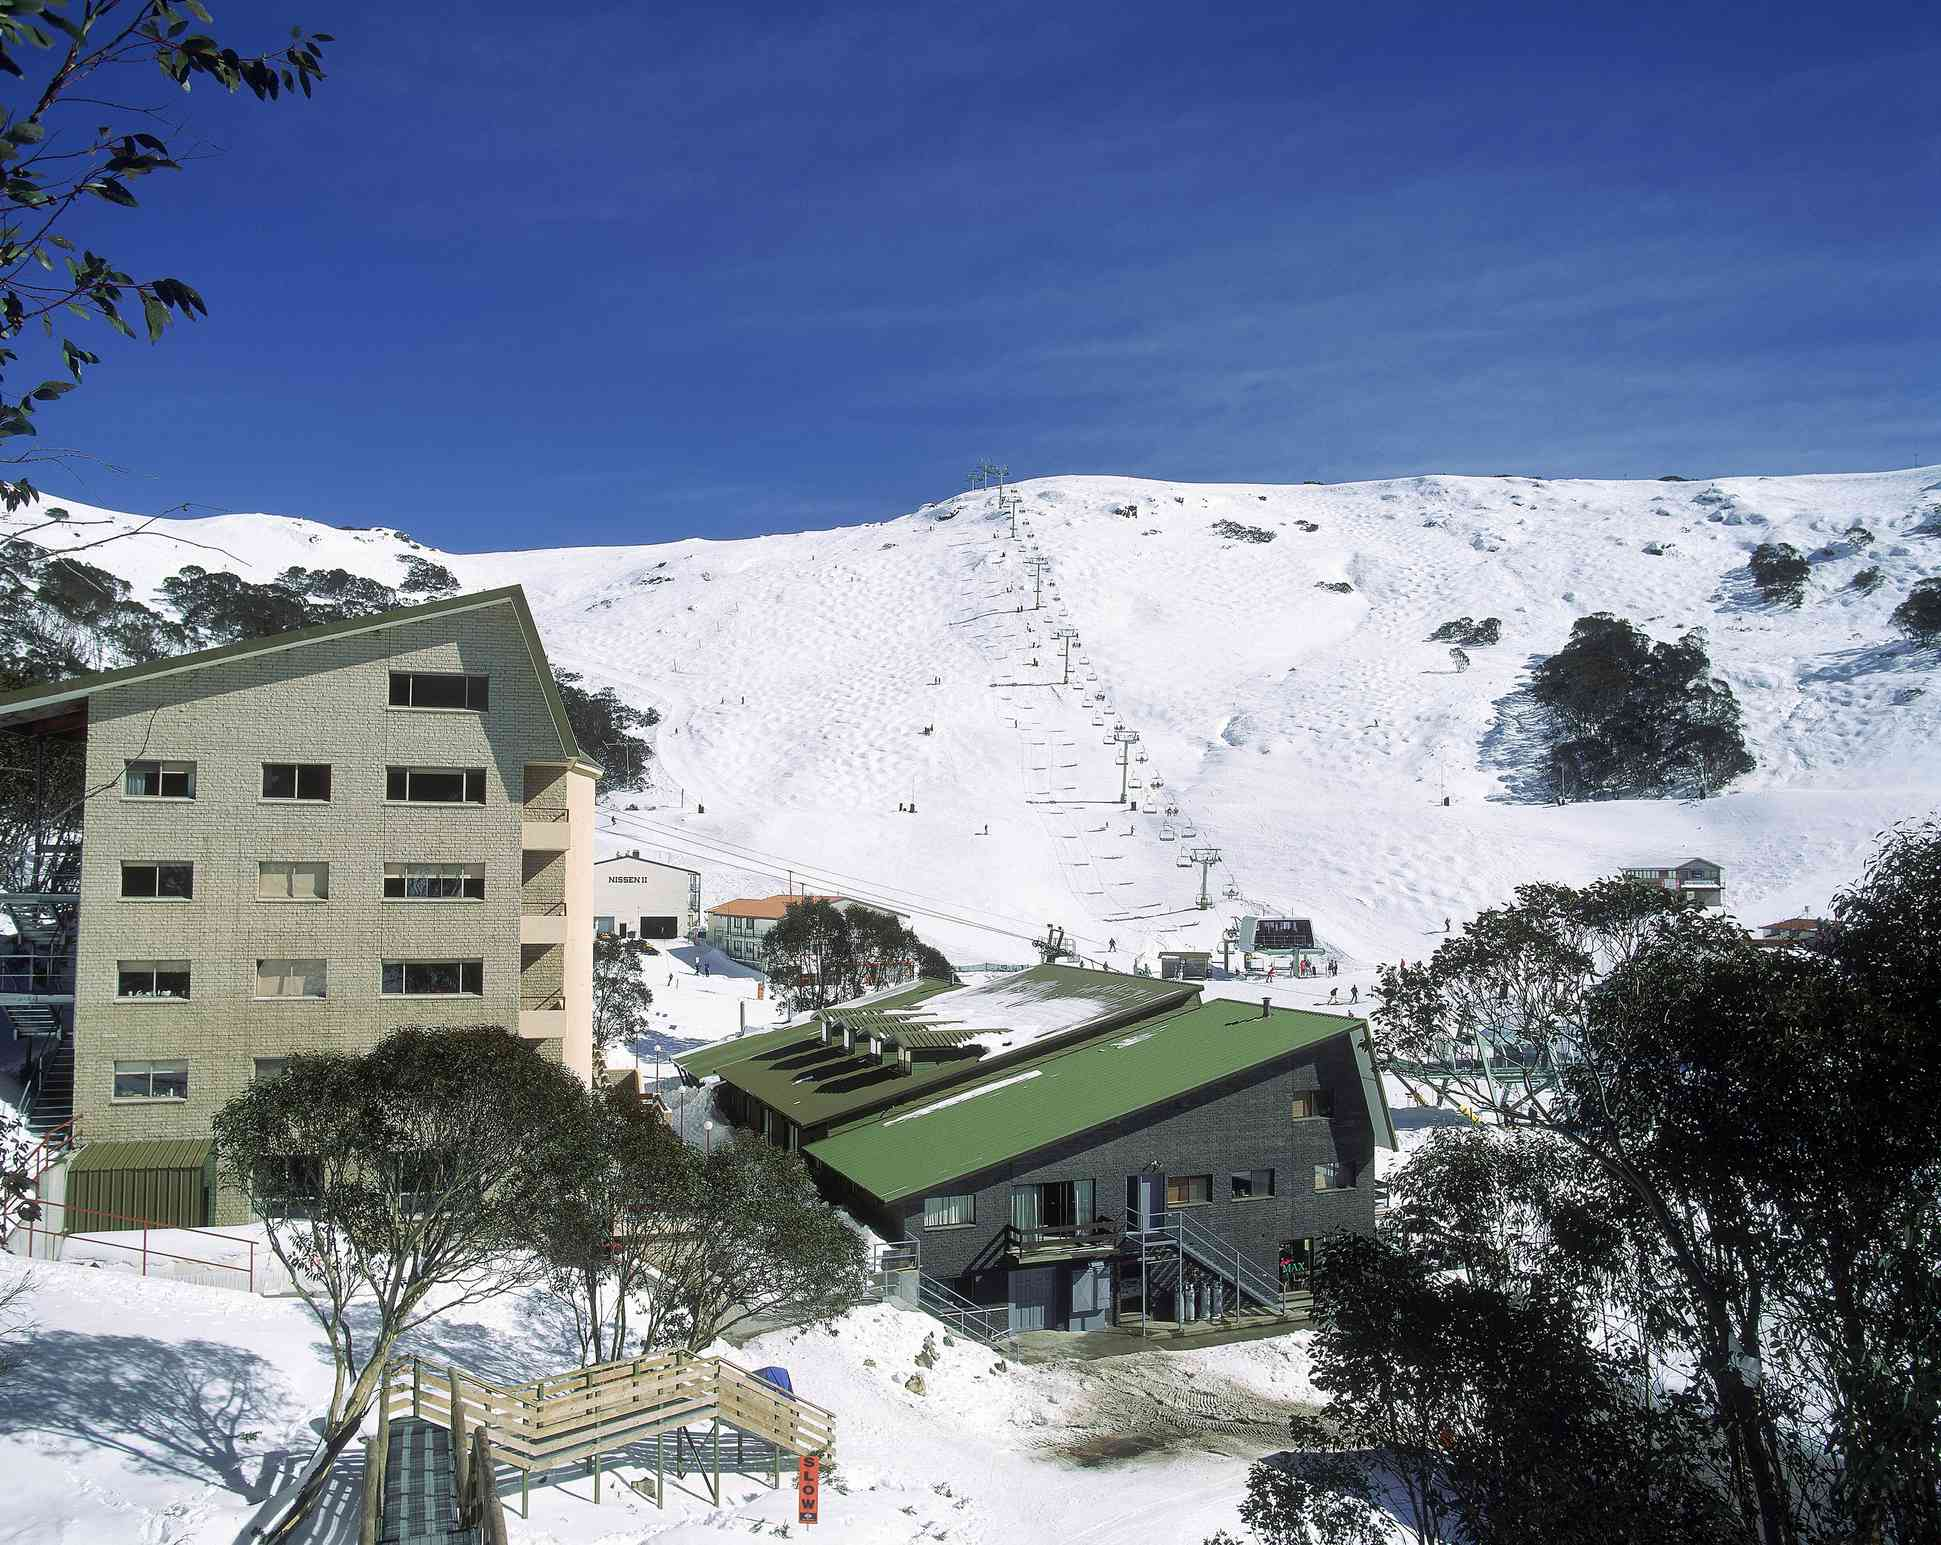 ski village at Falls Lake with midrise condominium building, ski lodge with a green sloped roof, and snow-covered ski slope below blue sky